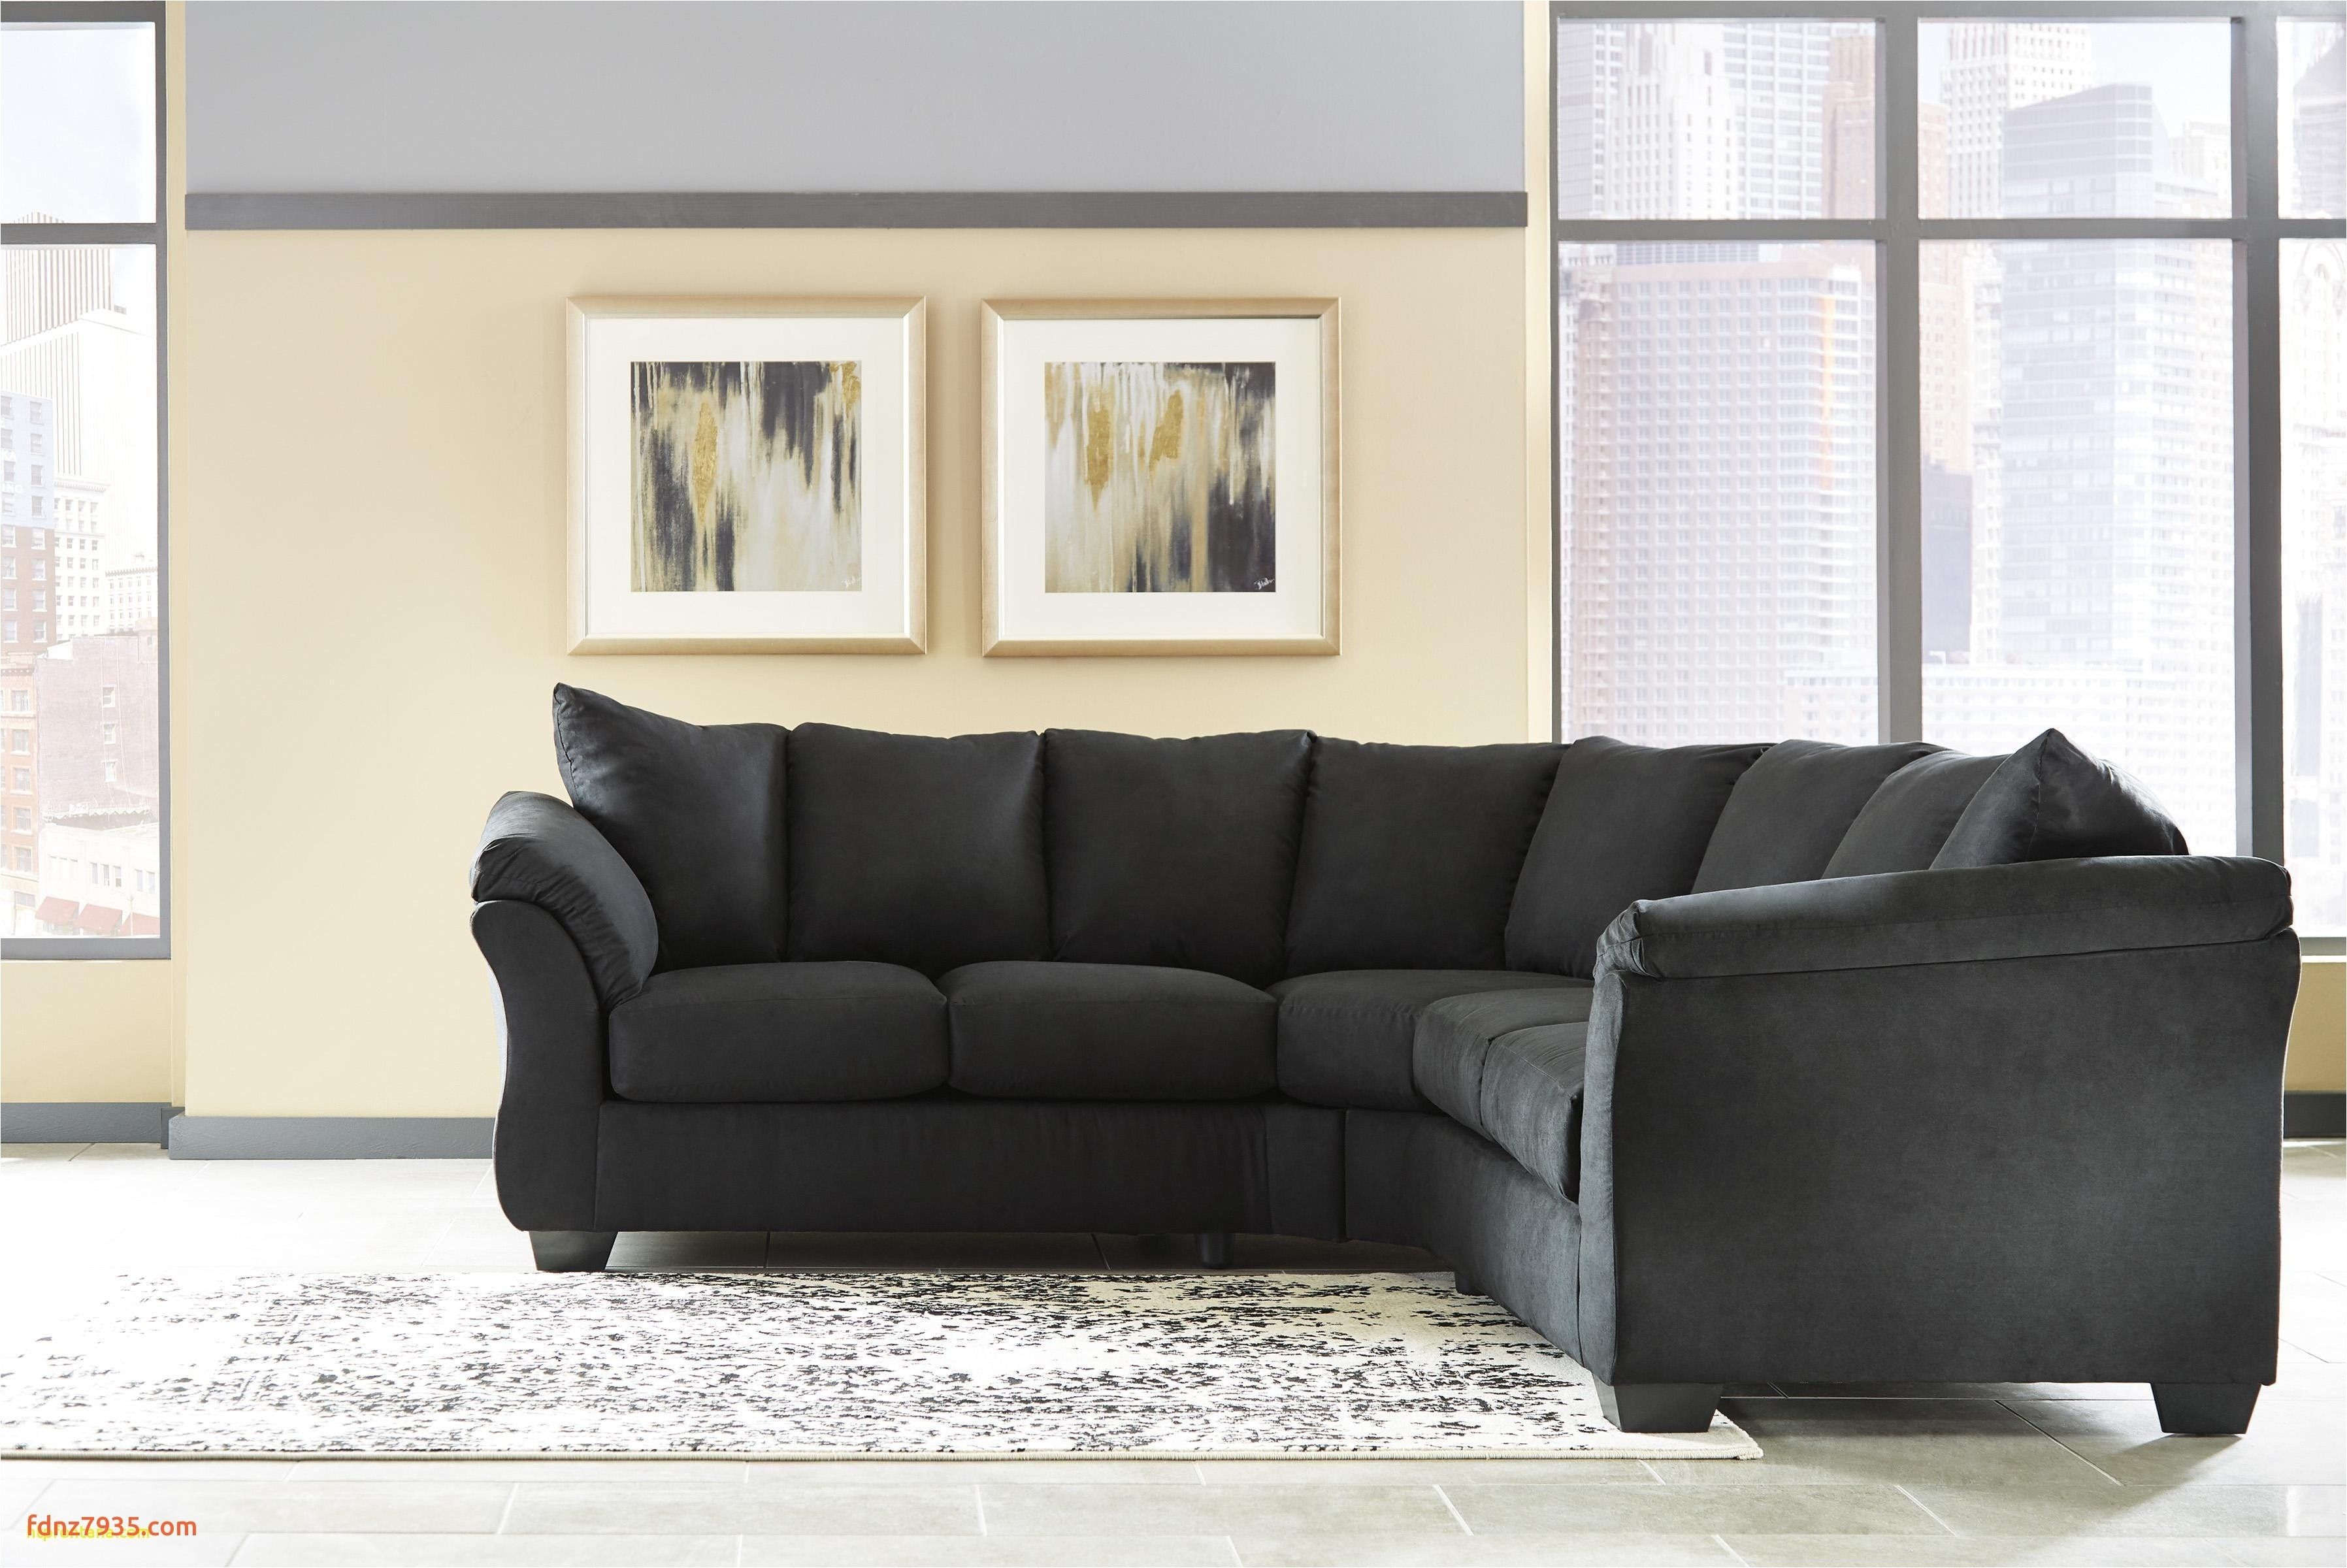 Stylish Casual Classic Steel Piece Sectional Sofa Denali Rc inside Tenny Dark Grey 2 Piece Right Facing Chaise Sectionals With 2 Headrest (Image 26 of 30)